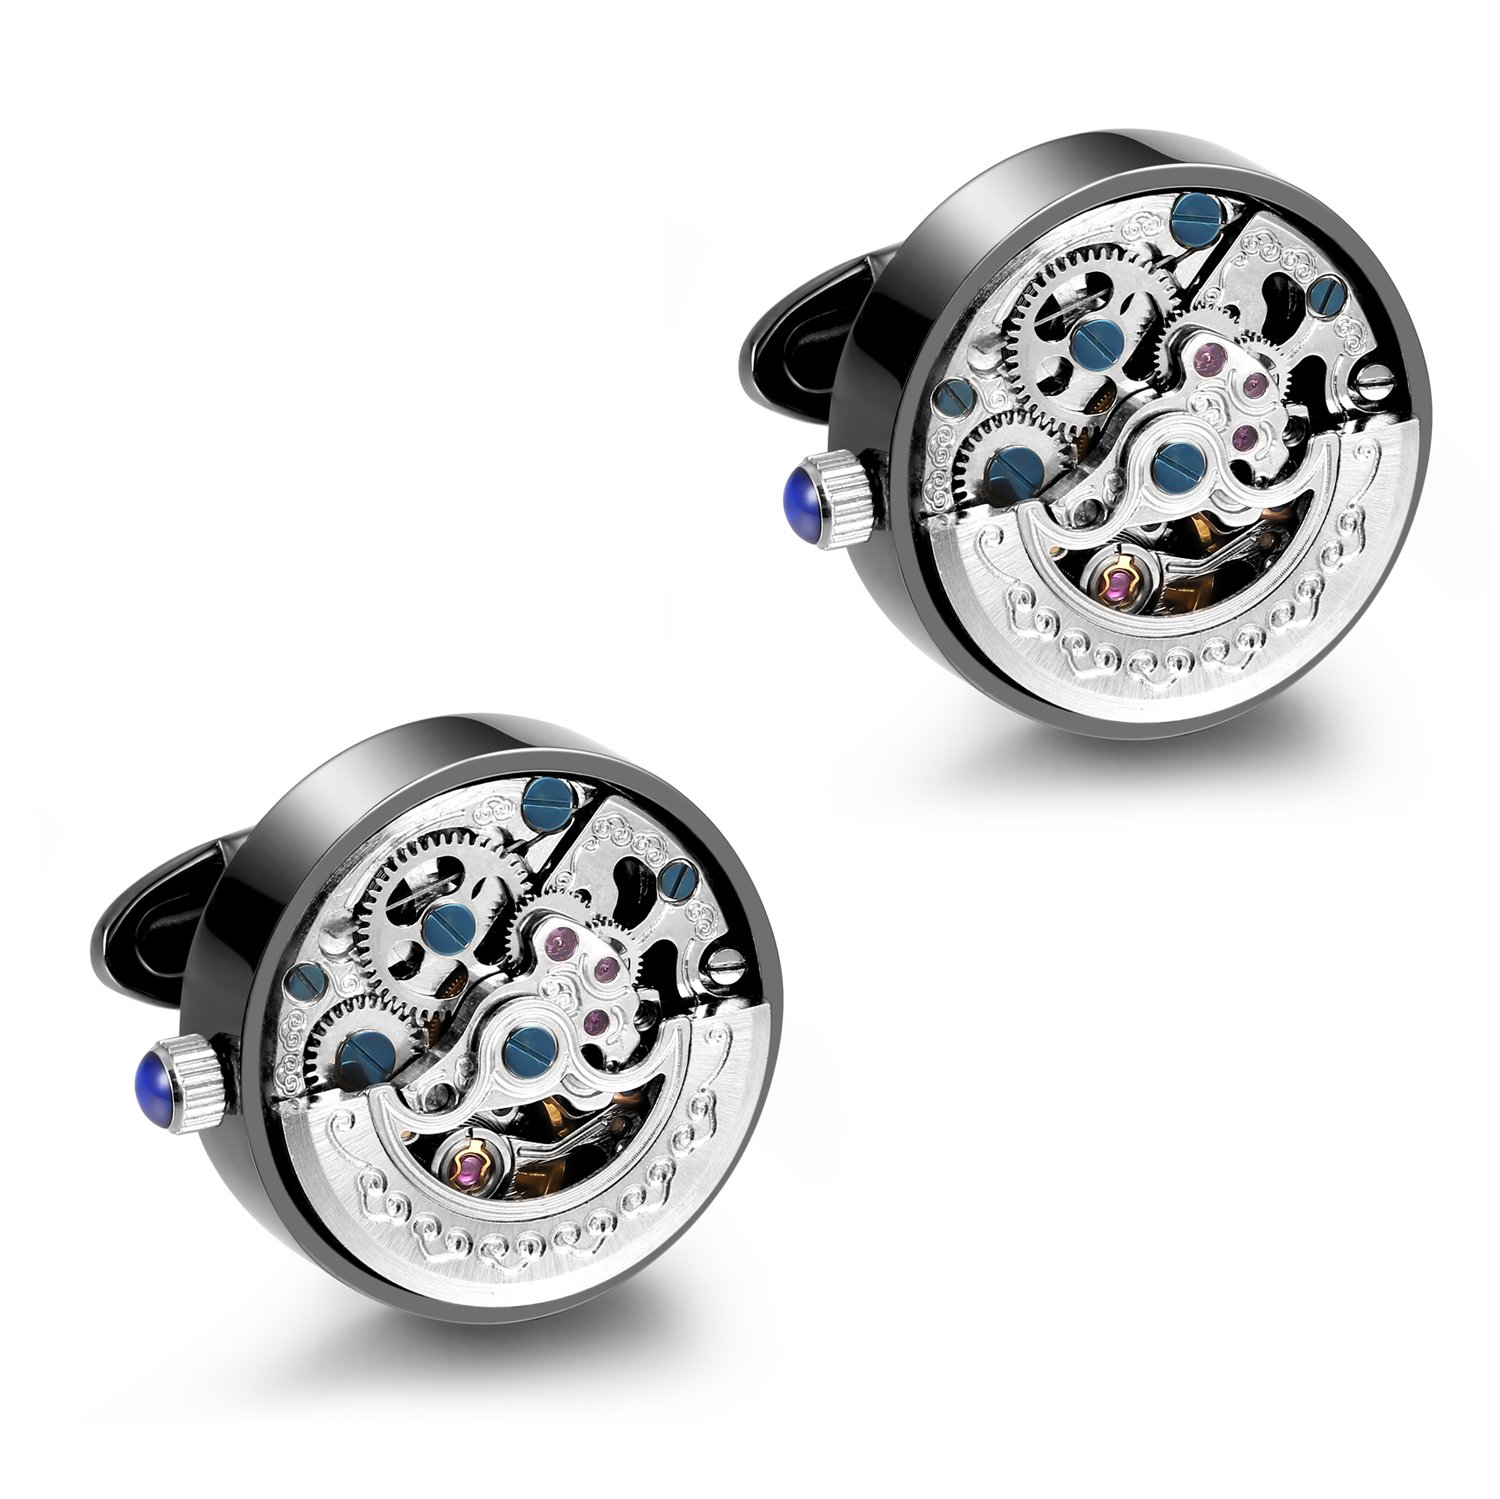 Dich Creat Men's Gunmetal PVD Stainless Steel Silver Automatic Skeleton Working Movement Cufflinks by Dich Creat